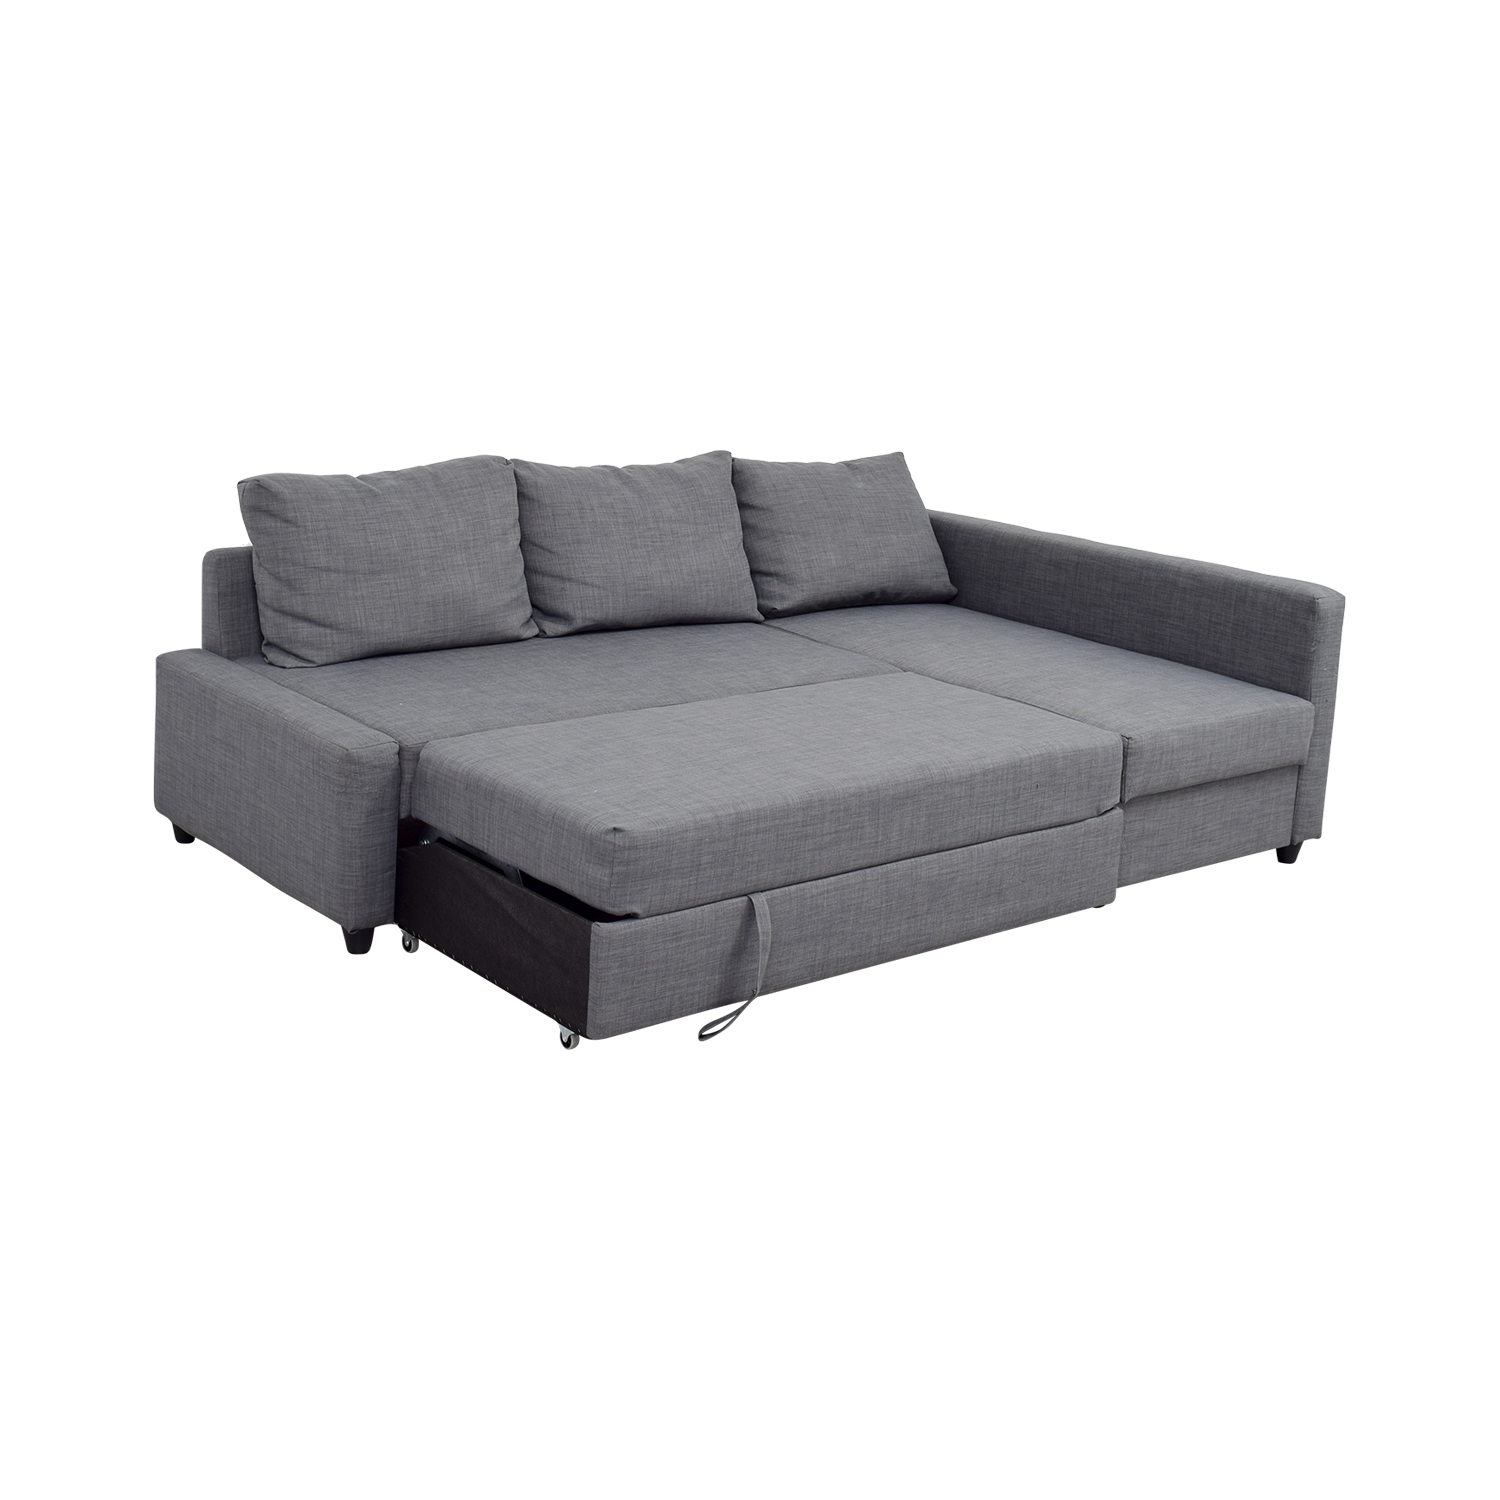 sectional sleeper sofa ikea photo - 3